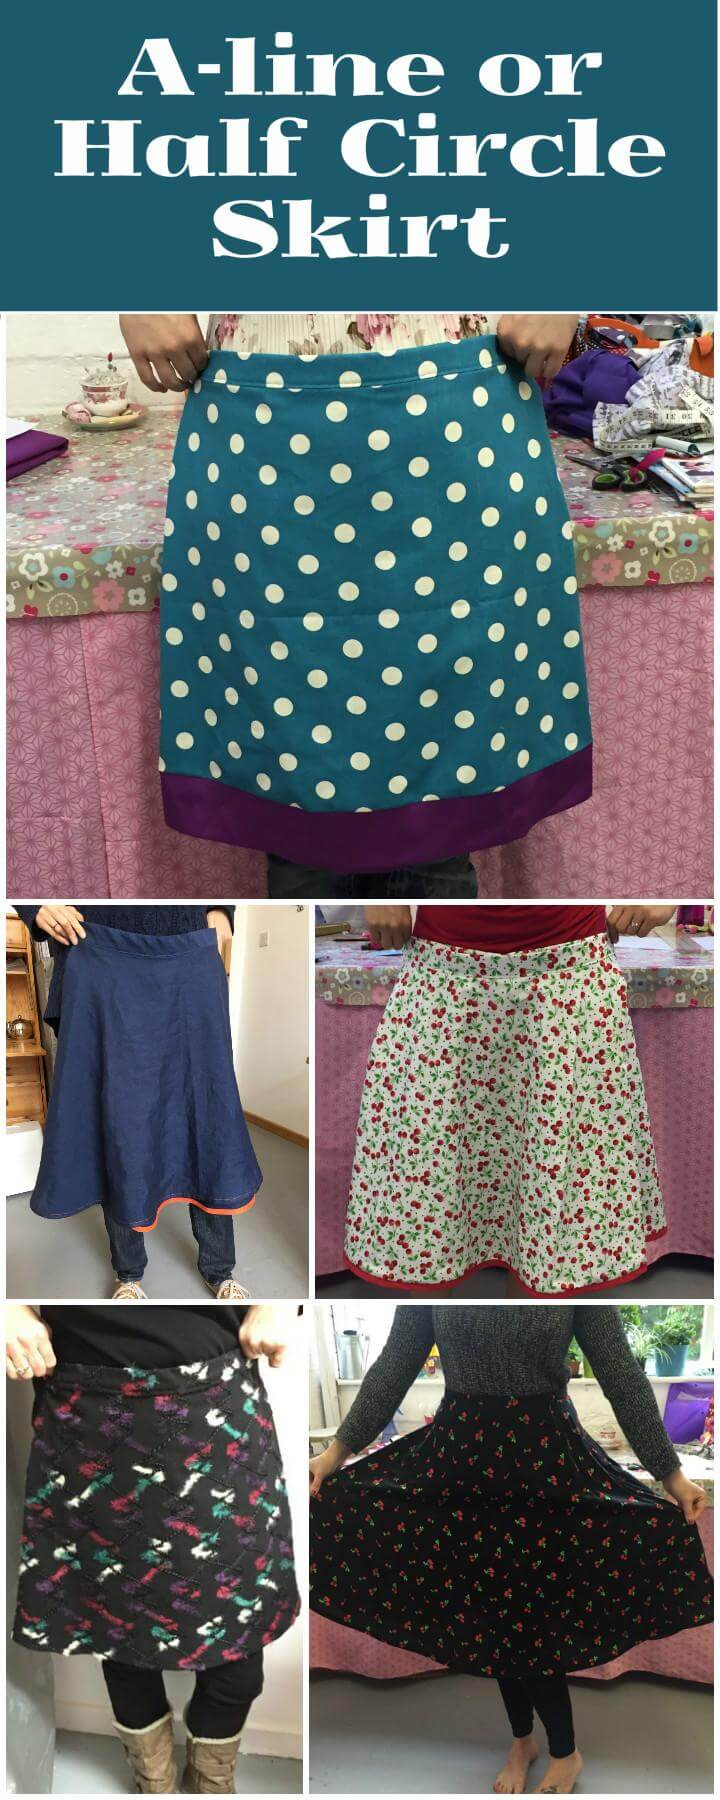 DIY a line or half circle skirt project